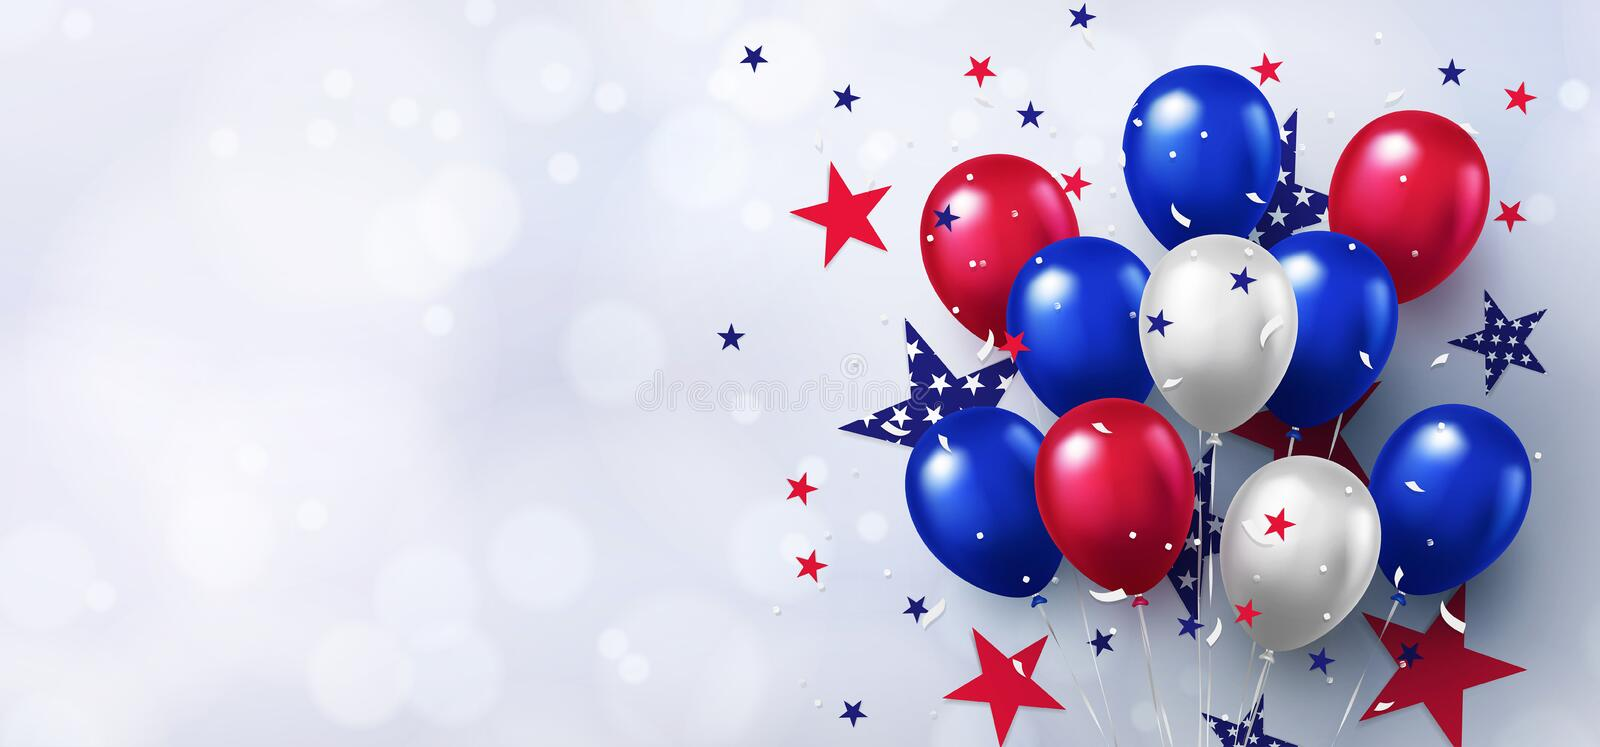 Festive design with helium balloons in national colors of the american flag and with pattern of stars on white background. vector illustration